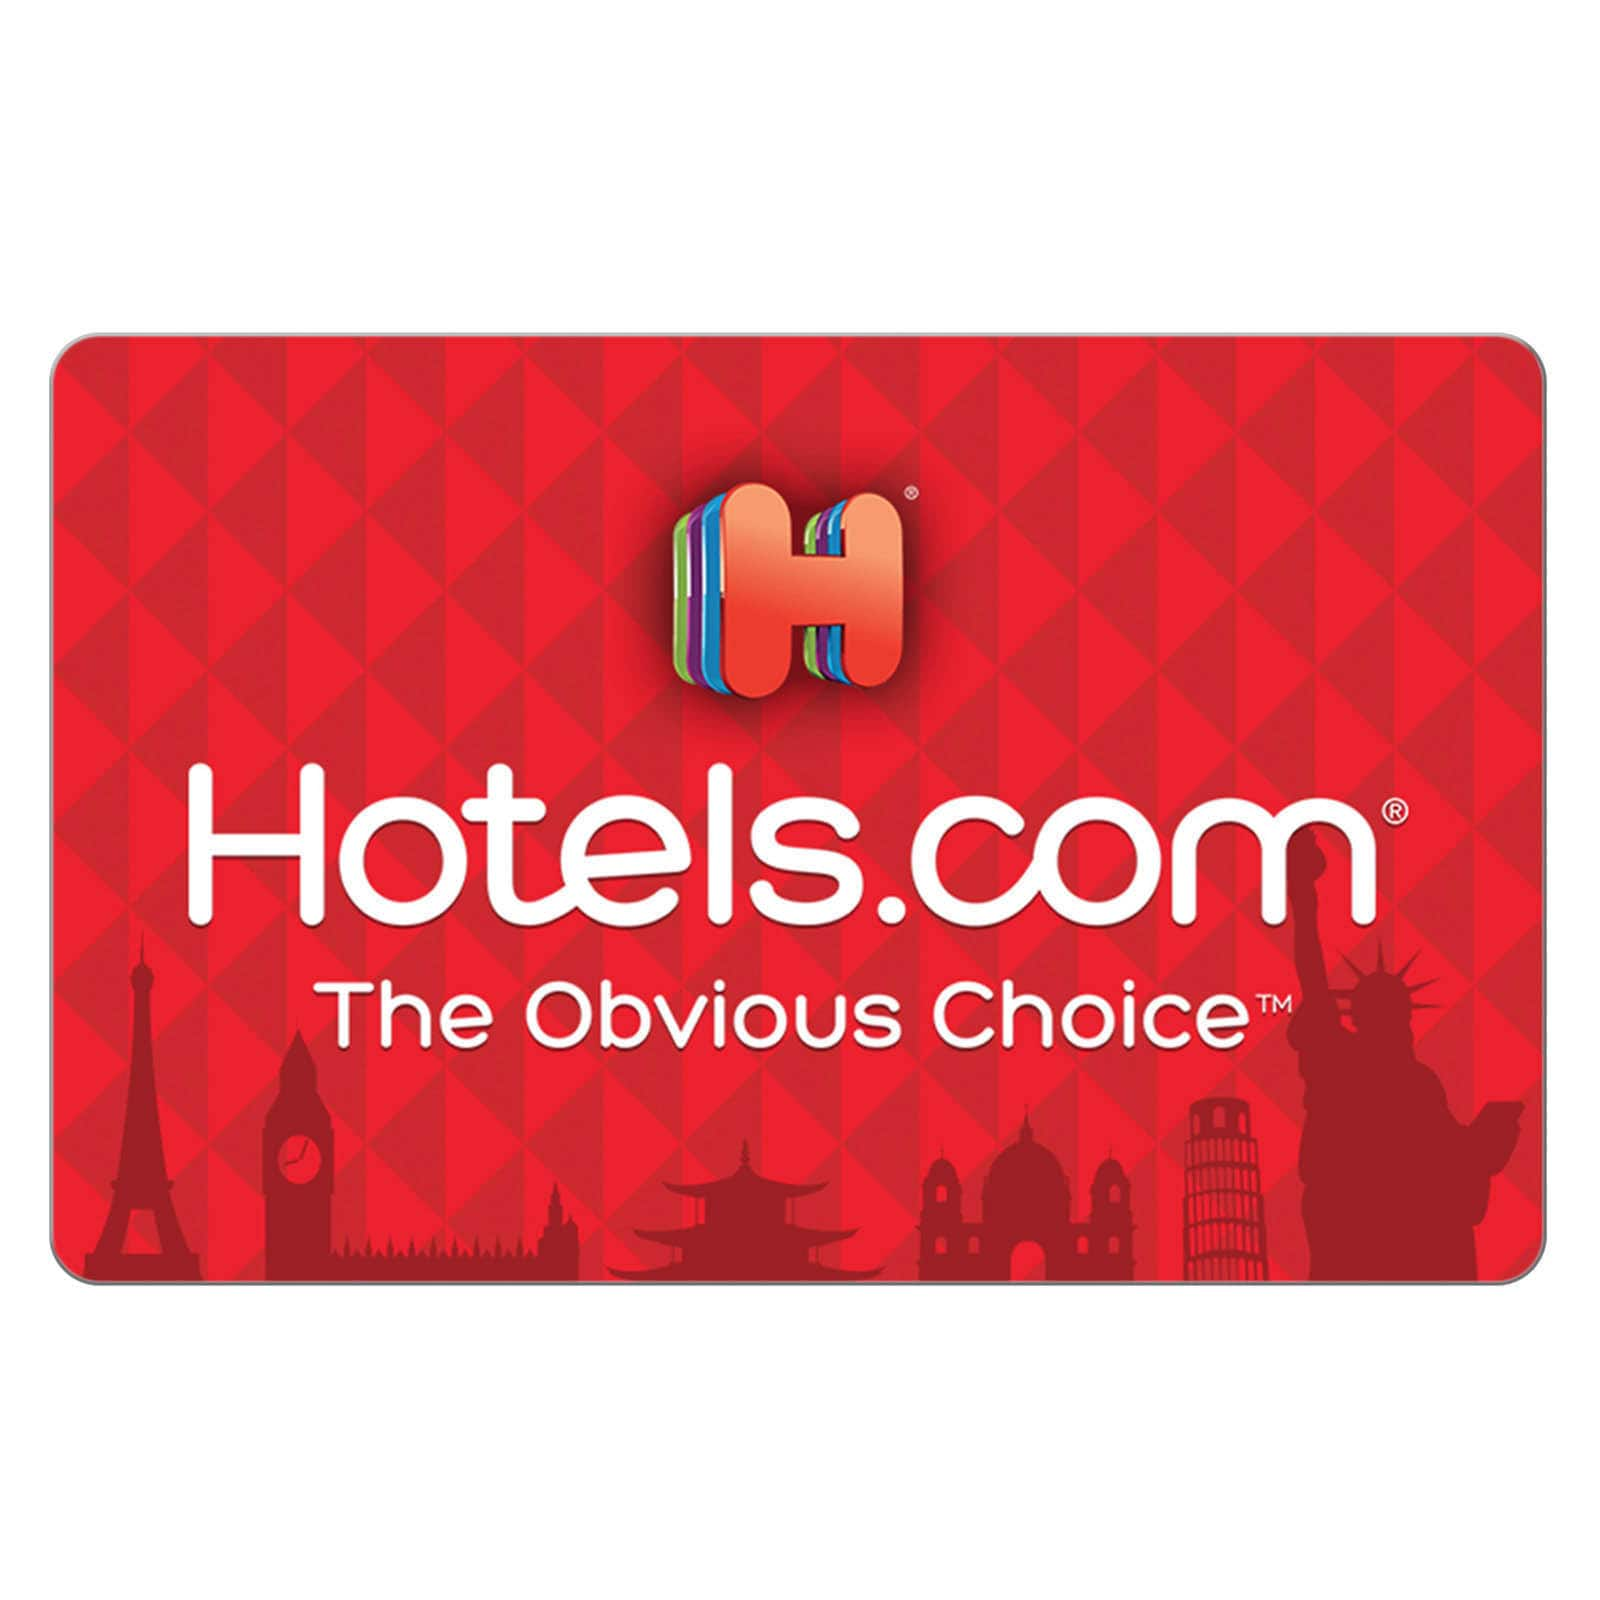 $100 Hotels.com Gift Card in $84.99 (15% off) - Free Shipping - BJs Membership required  - No limit - Online only